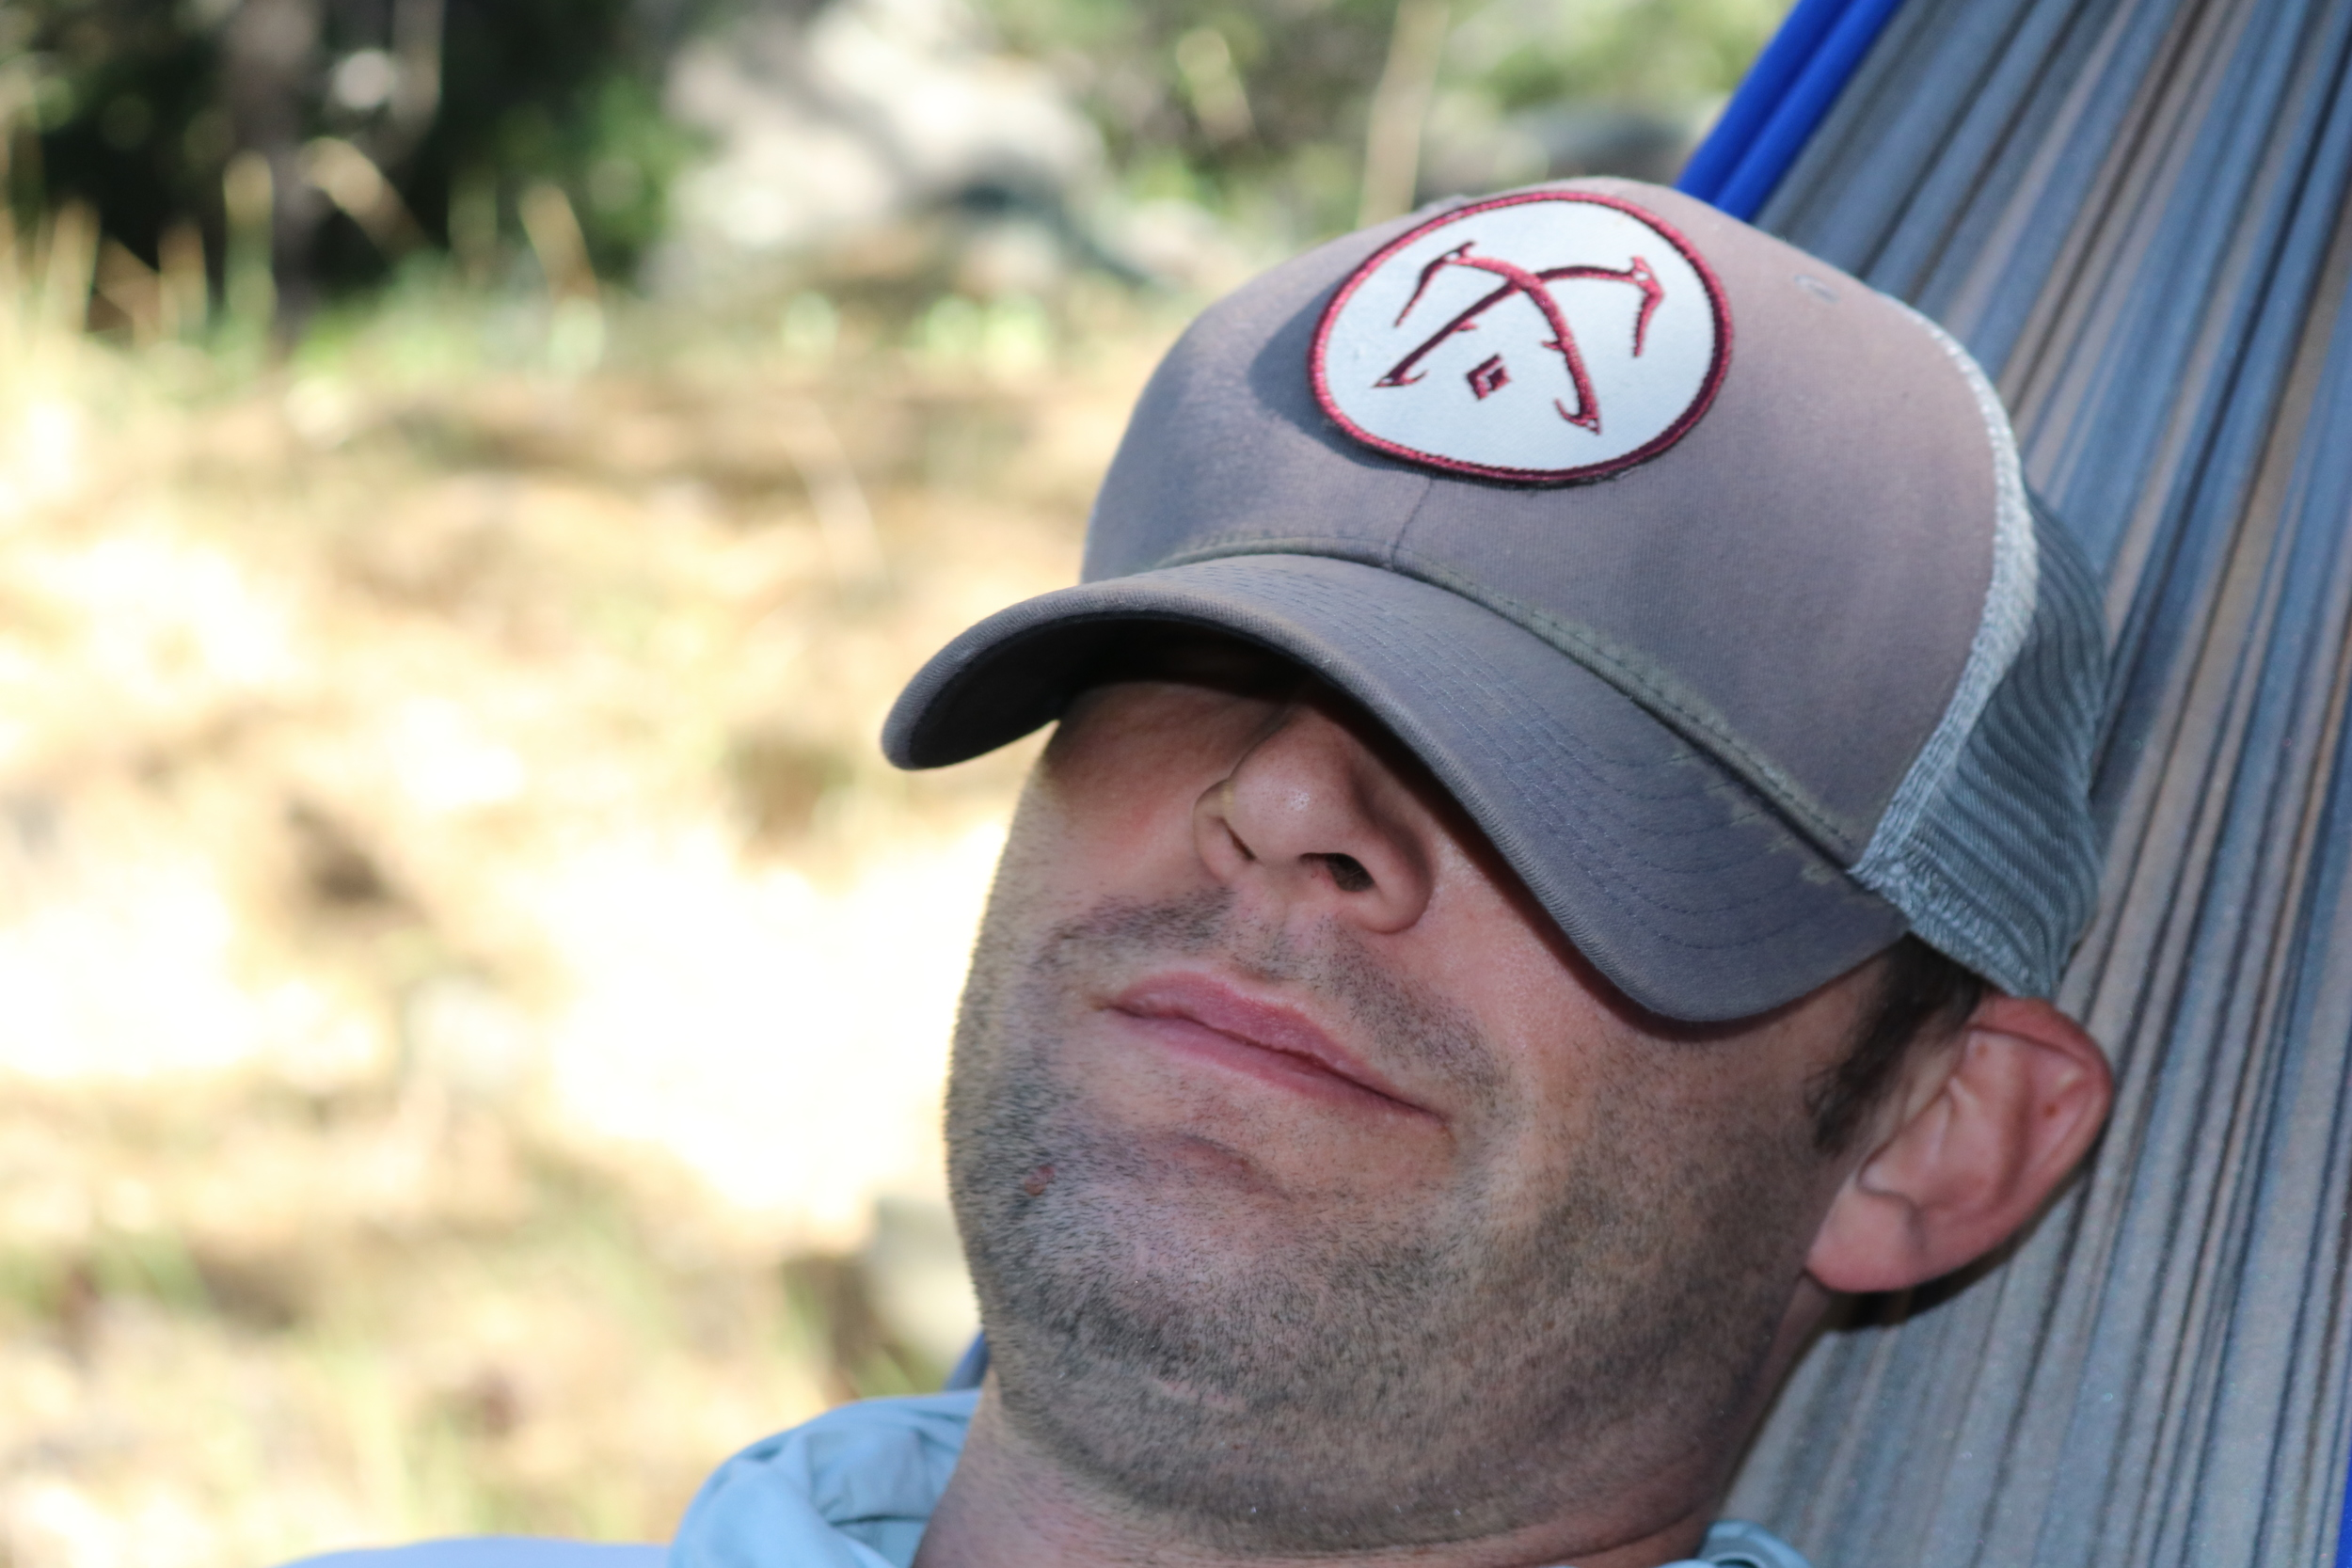 Nothing beats a mid-hike or mid-trek nap in a hammock alongside the trail.